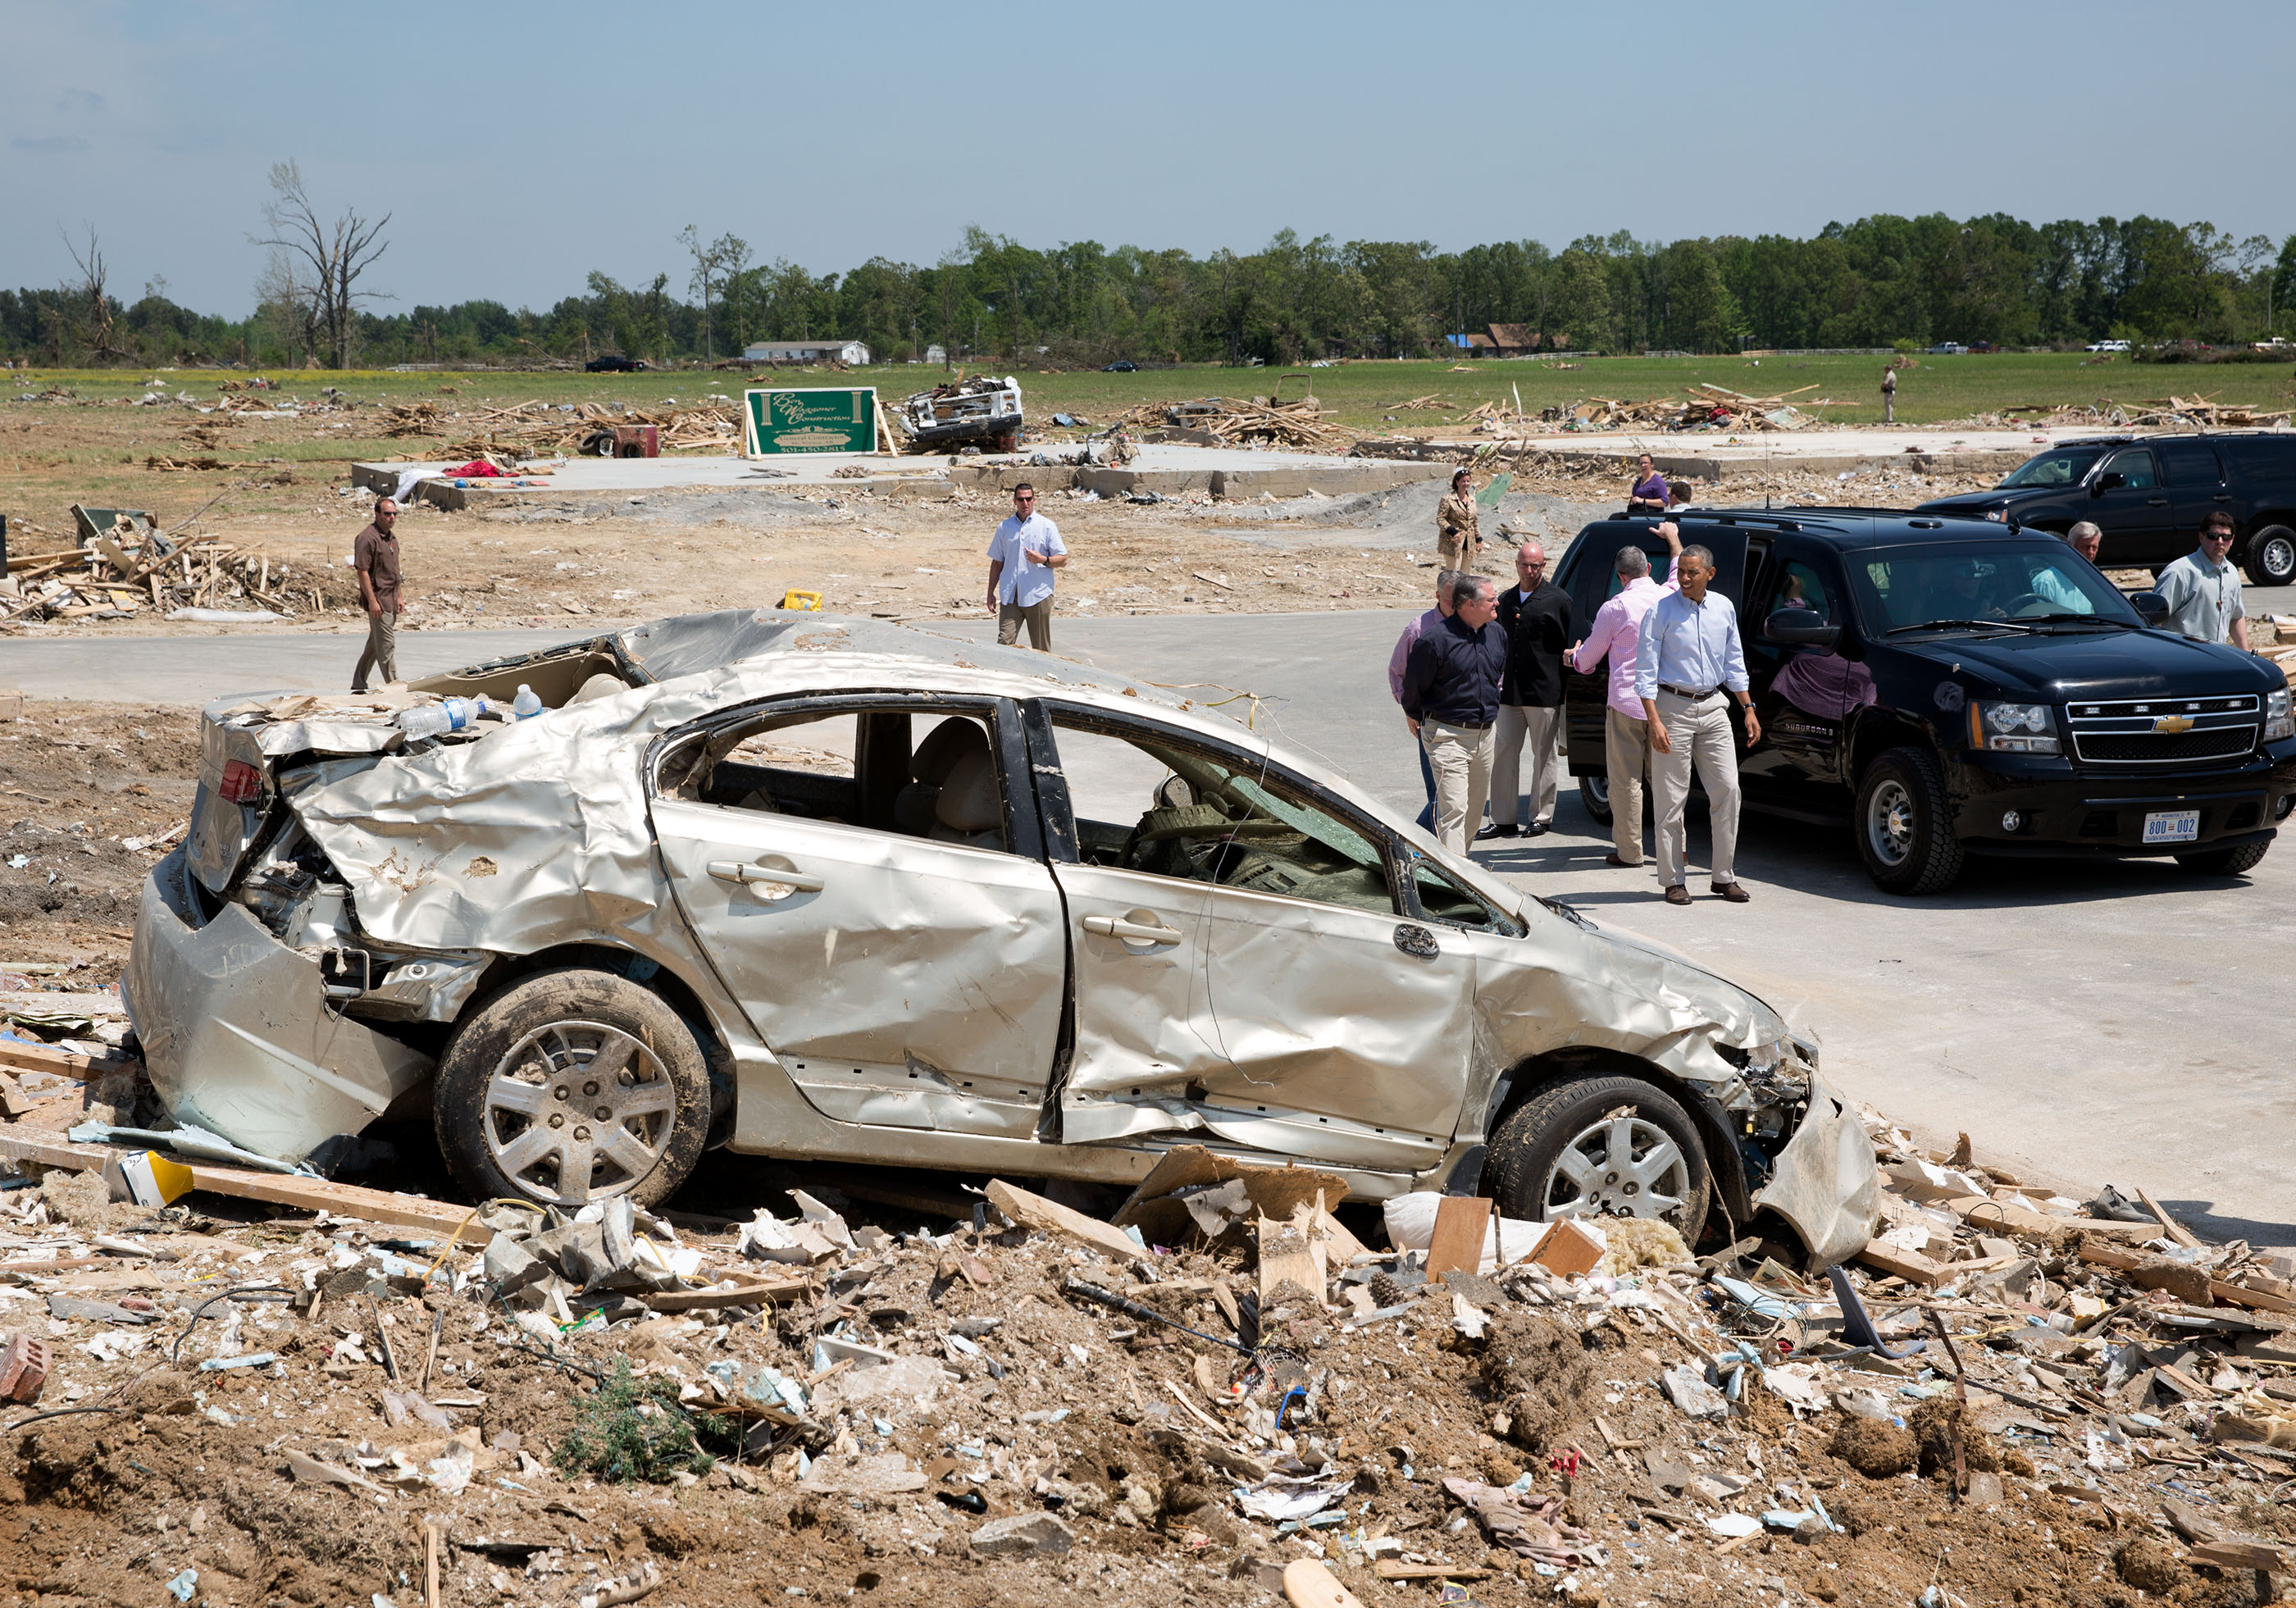 Arkansas. May 7, 2014. Touring tornado damage in Vilonia. (Official White House Photo by Pete Souza)